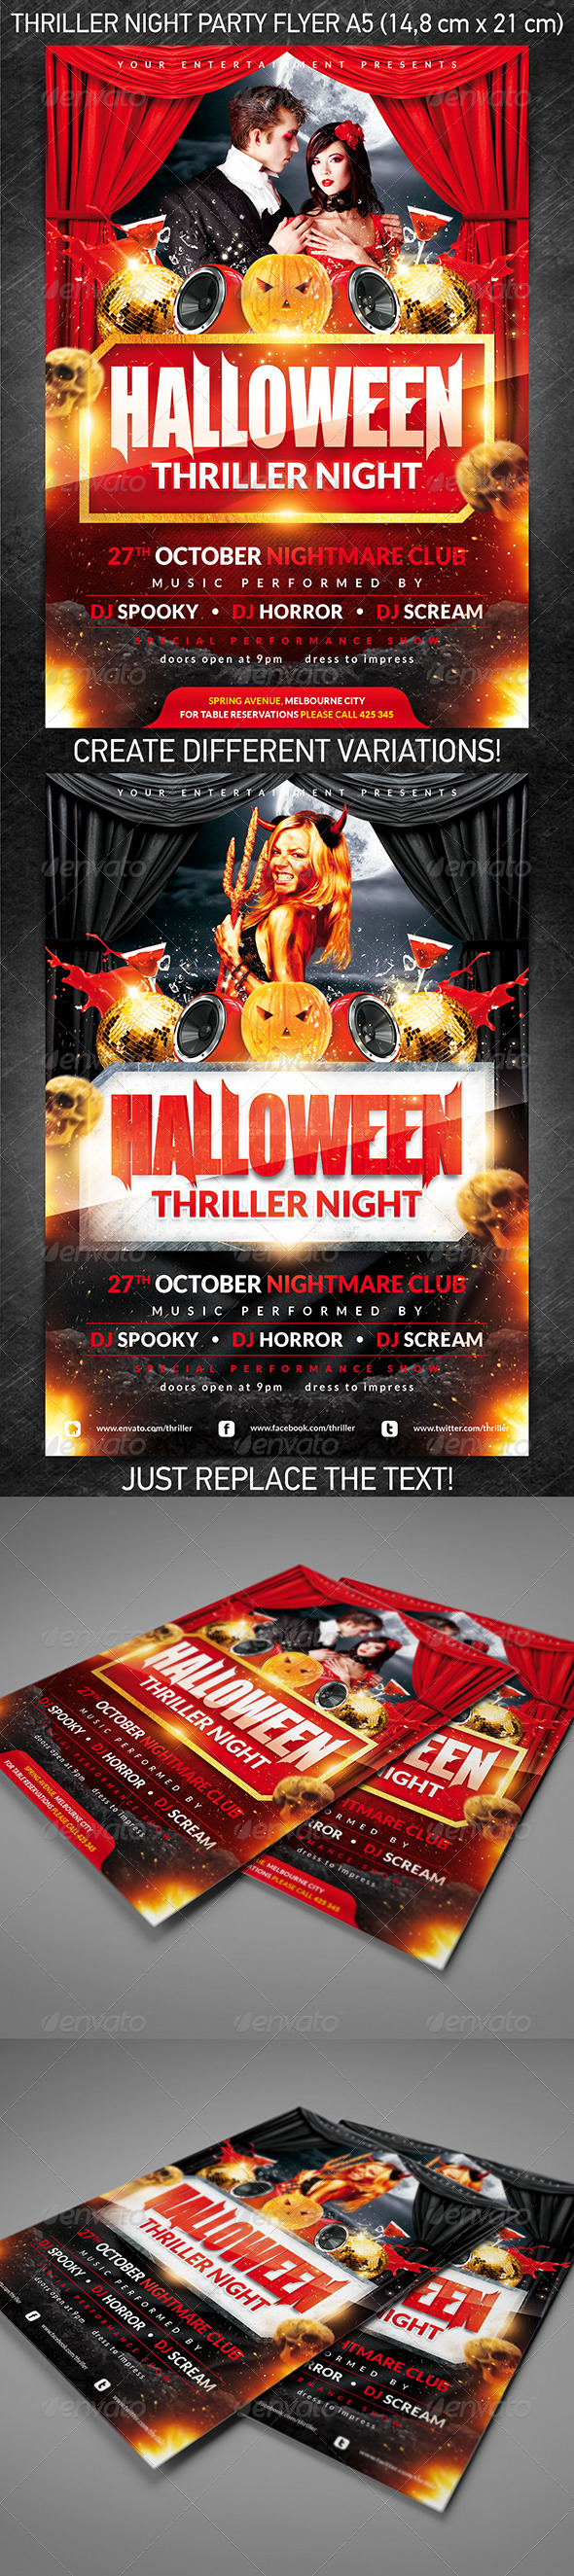 Halloween Thriller Night Party Flyer - Holidays Events